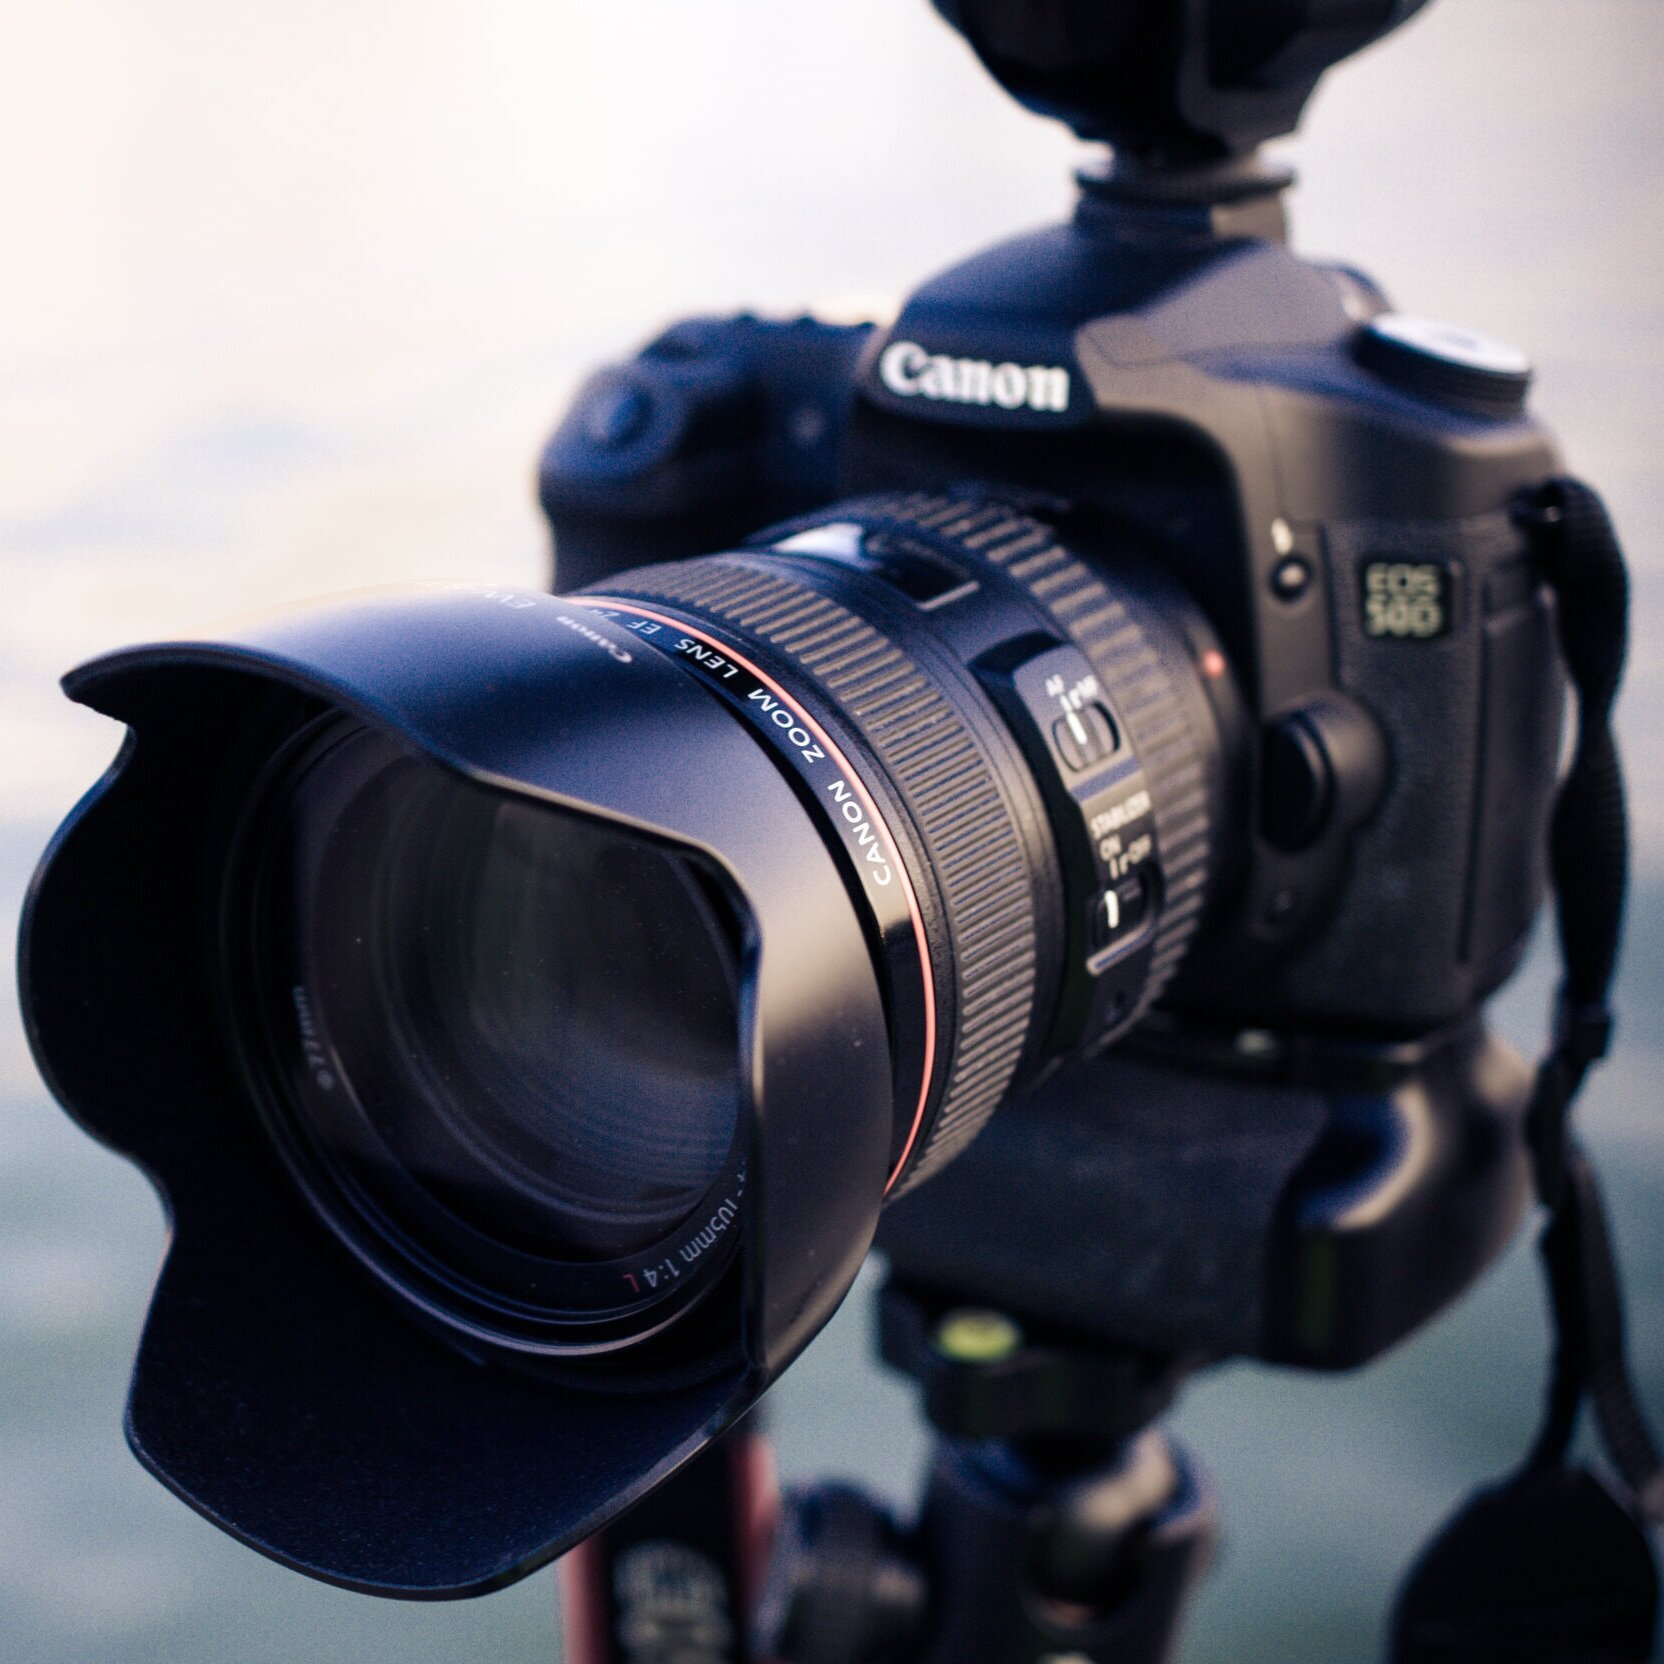 Photo & Video - Photography and videography can be extremely complex and expensive, but our team is highly experienced and always delivers high quality at a low cost.Services include:Event photographyEvent videographyPromotional photos & videosEvent photo livestreamPhoto editing & retouching